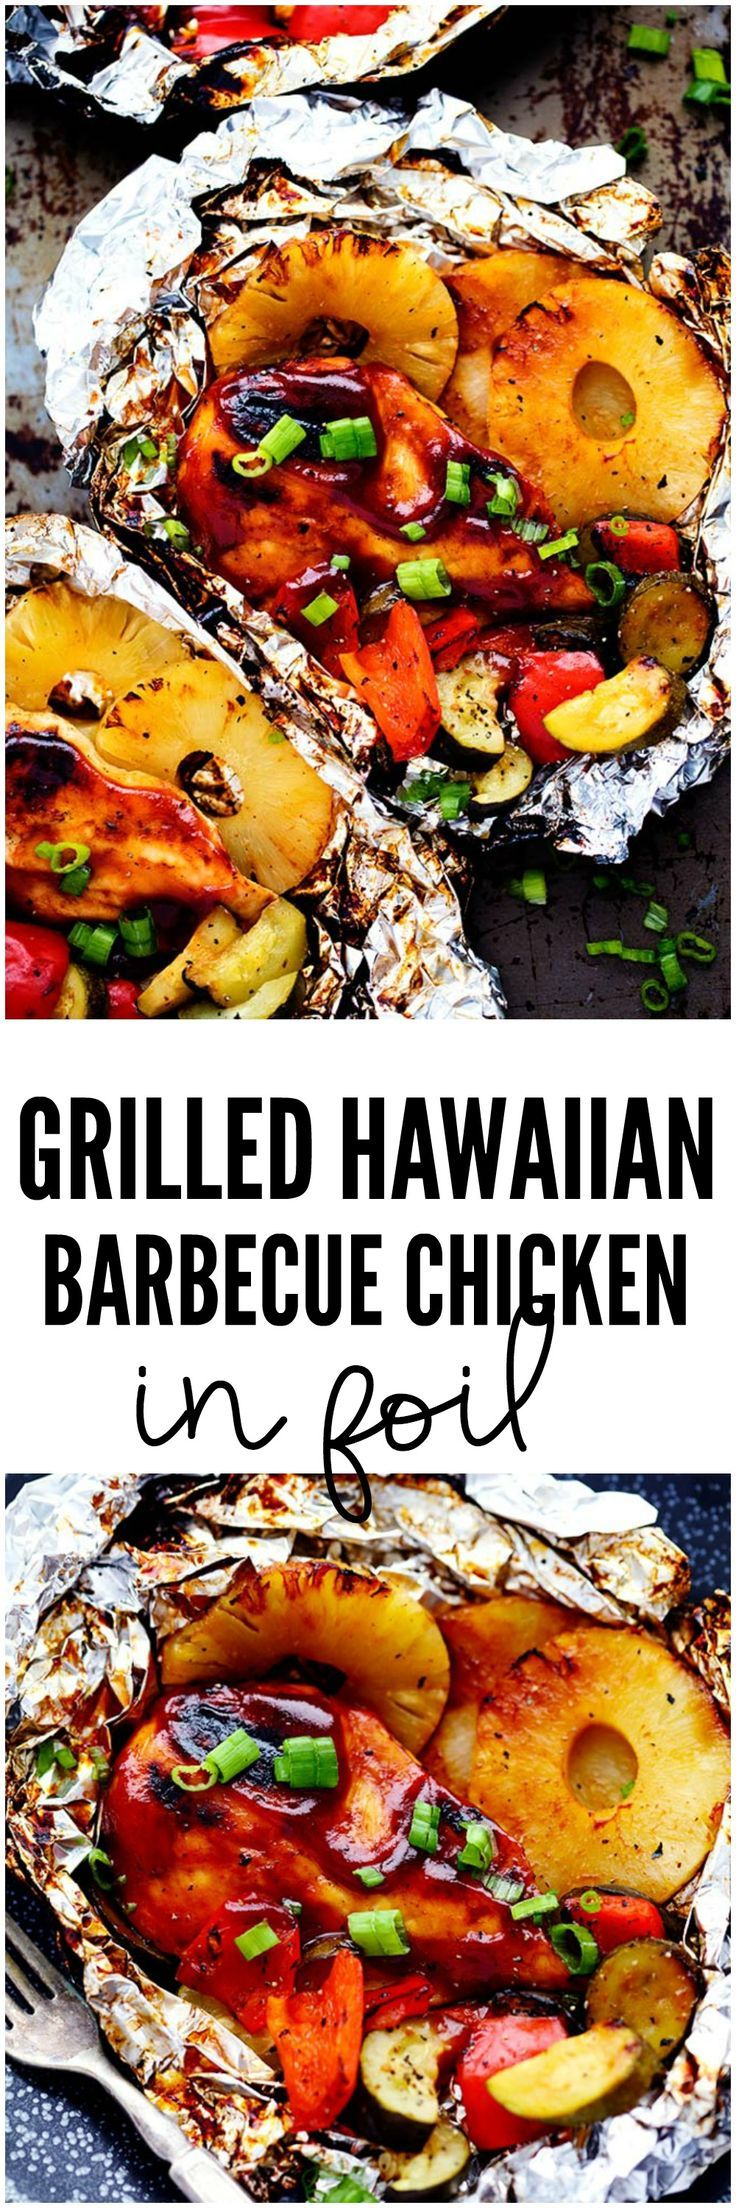 Grilled Hawaiian Barbecue Chicken in Foil has the most amazing sweet and tangy…